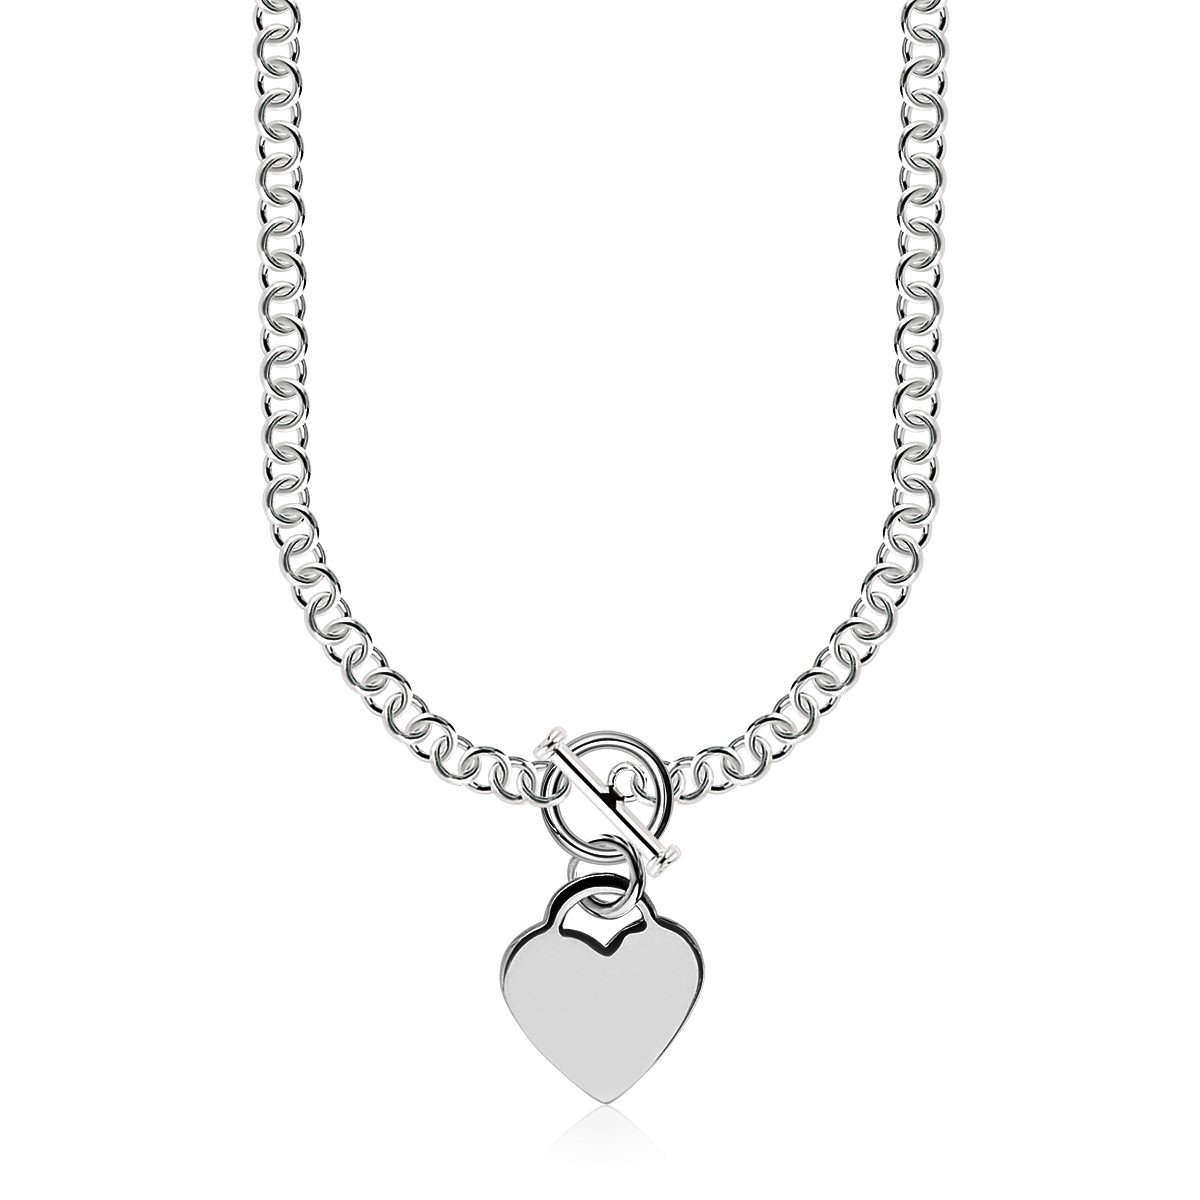 925 Sterling Silver Rhodium Plated Rolo Chain Necklace with a Heart Toggle Charm